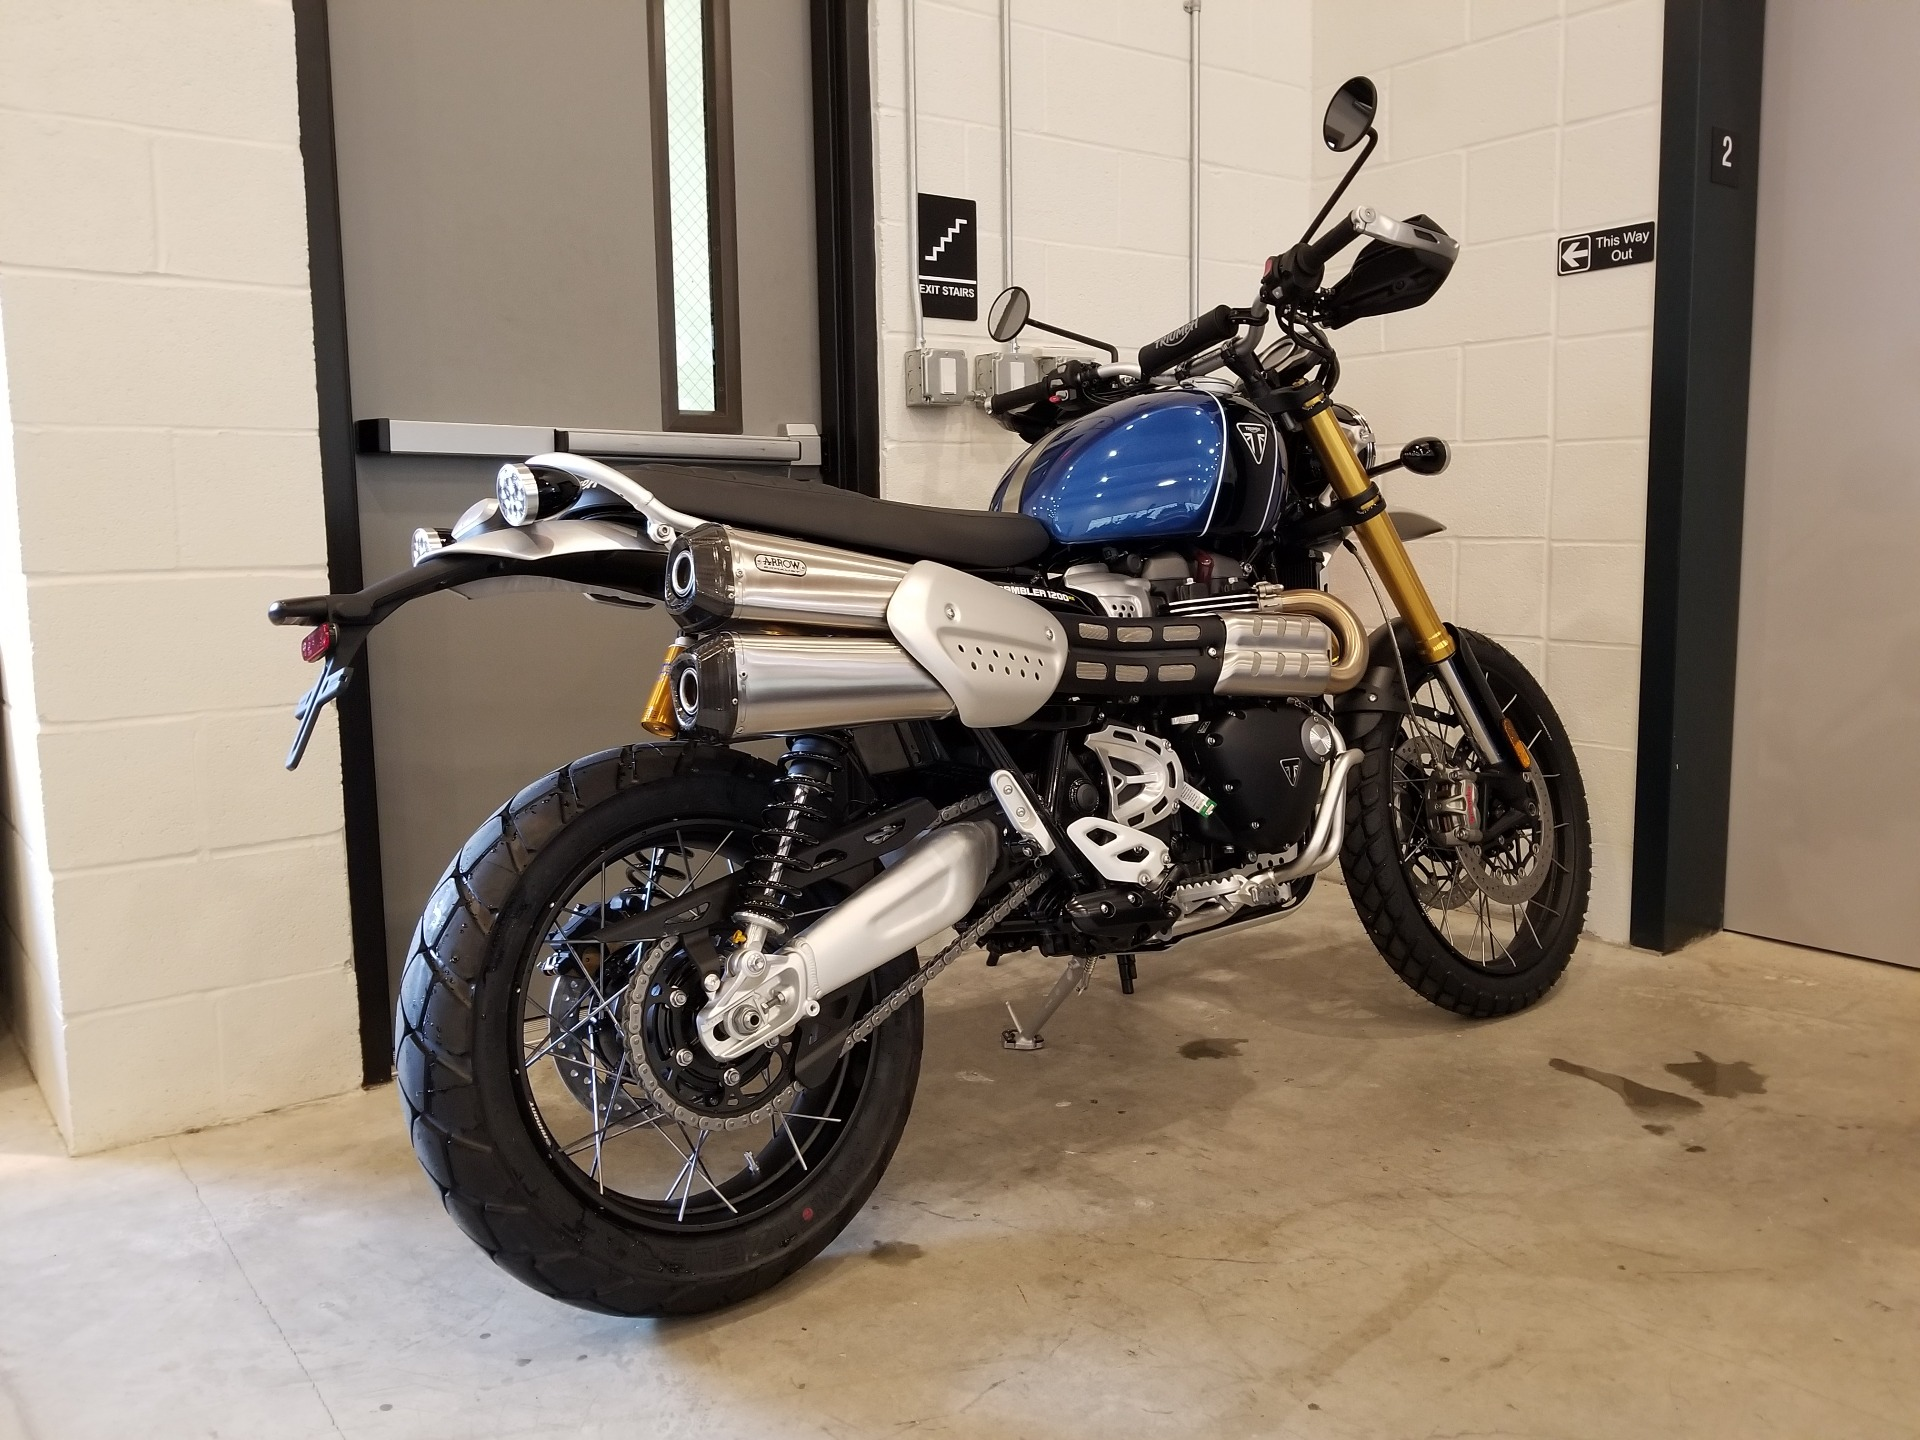 2019 Triumph Scrambler 1200 XE in Port Clinton, Pennsylvania - Photo 6